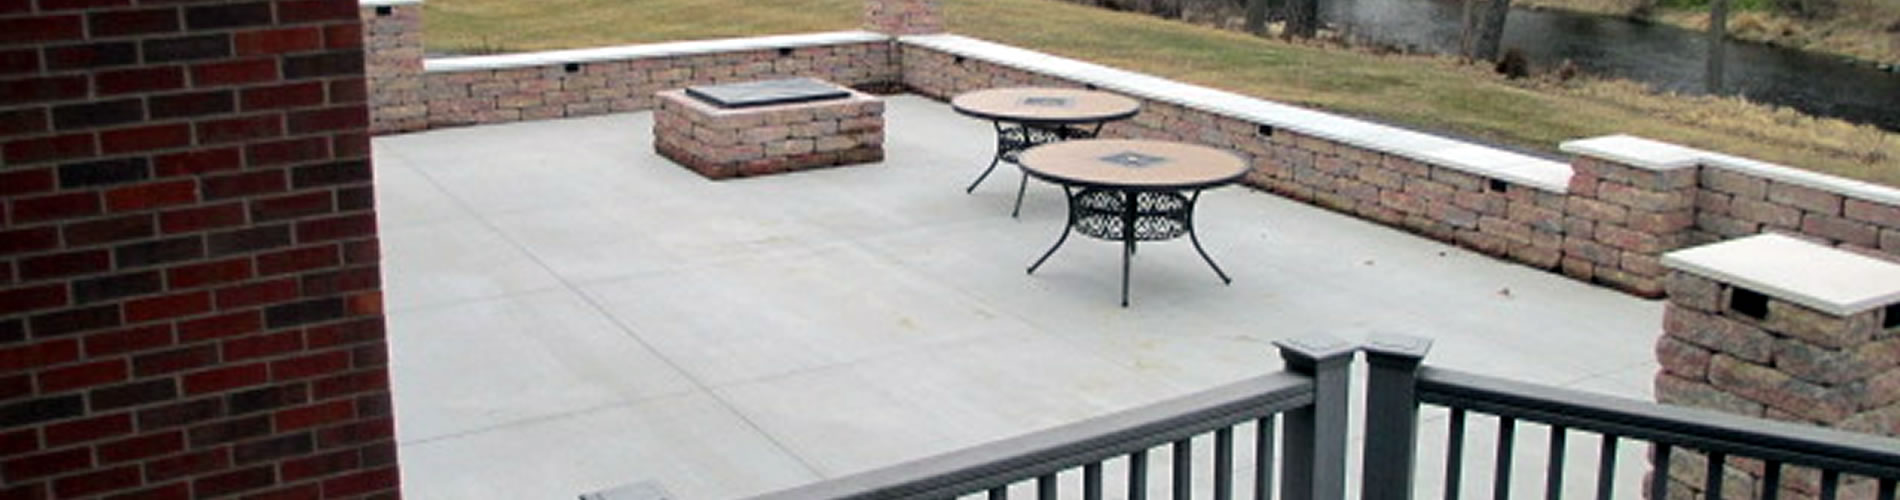 Decorative Concrete Installation Waukesha Wisconsin